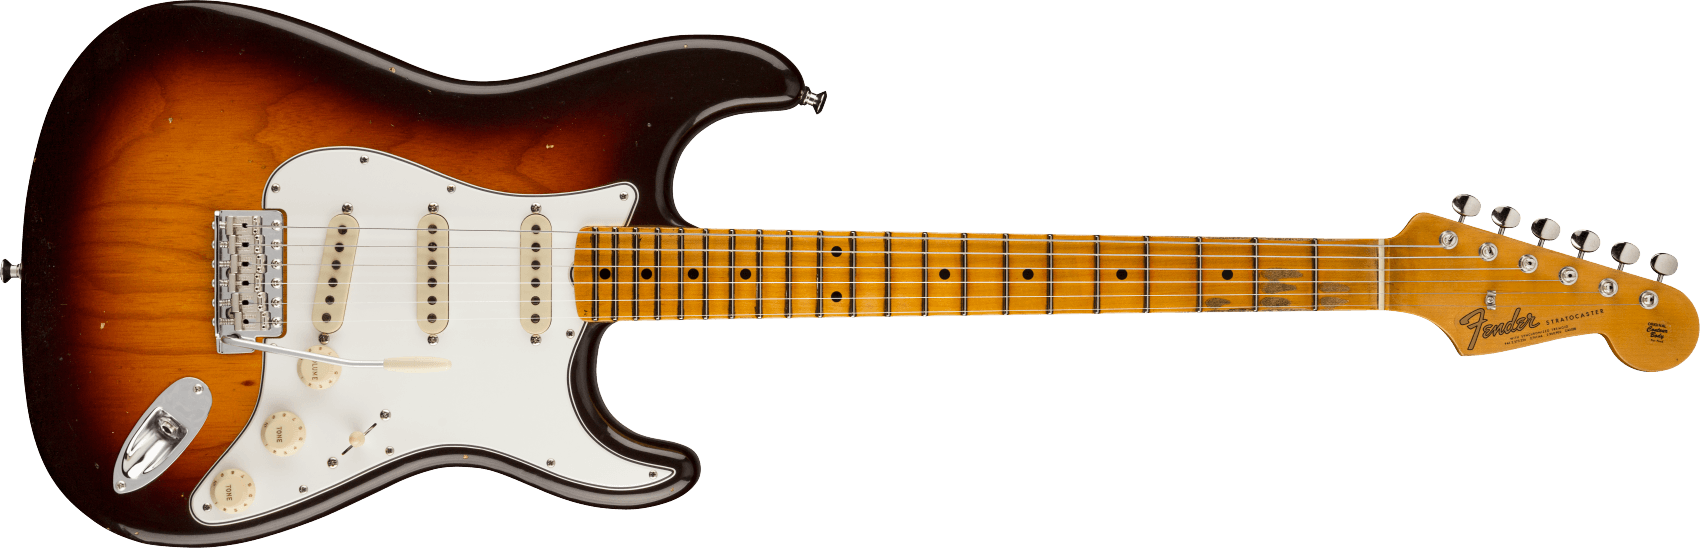 9231012918: Maple Fingerboard, Wide-Fade Chocolate 2-Color Sunburst